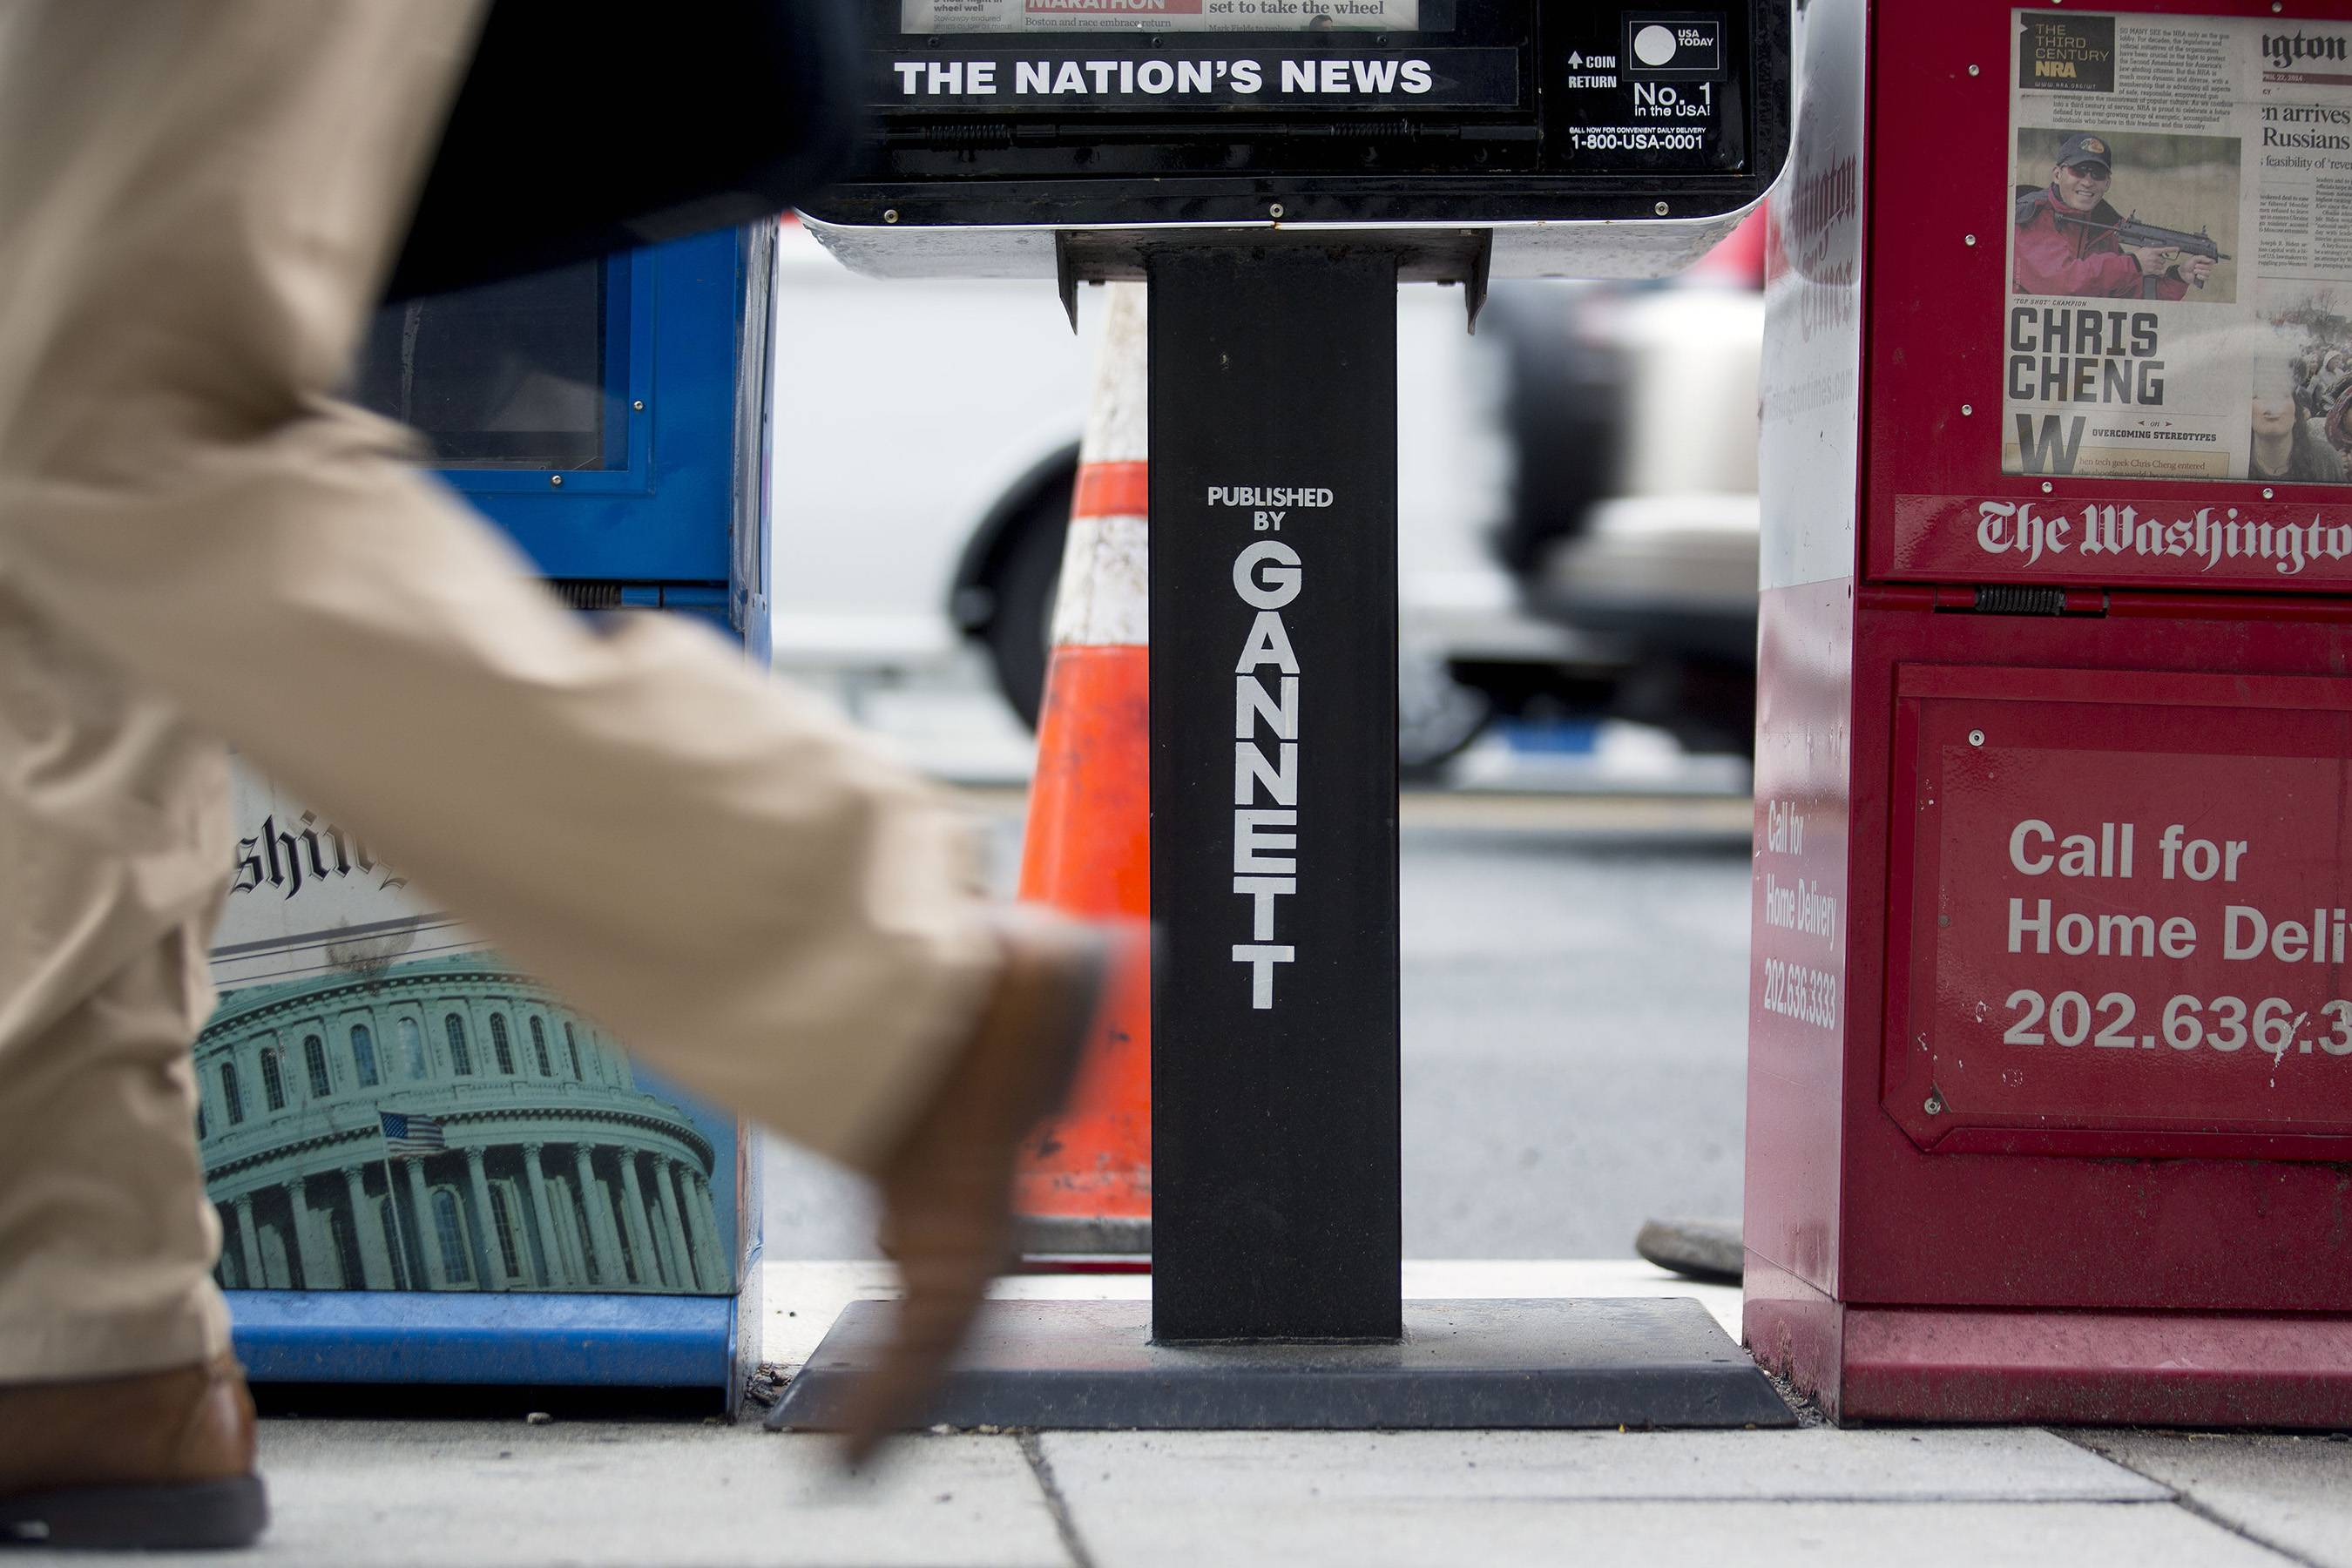 Gannett is splitting its broadcast and publishing business in two, joining other major media players in allowing fast growing TV and digital operations to operate more freely. The media company also announced Tuesday that it would take full ownership of Cars.com for $1.8 billion.